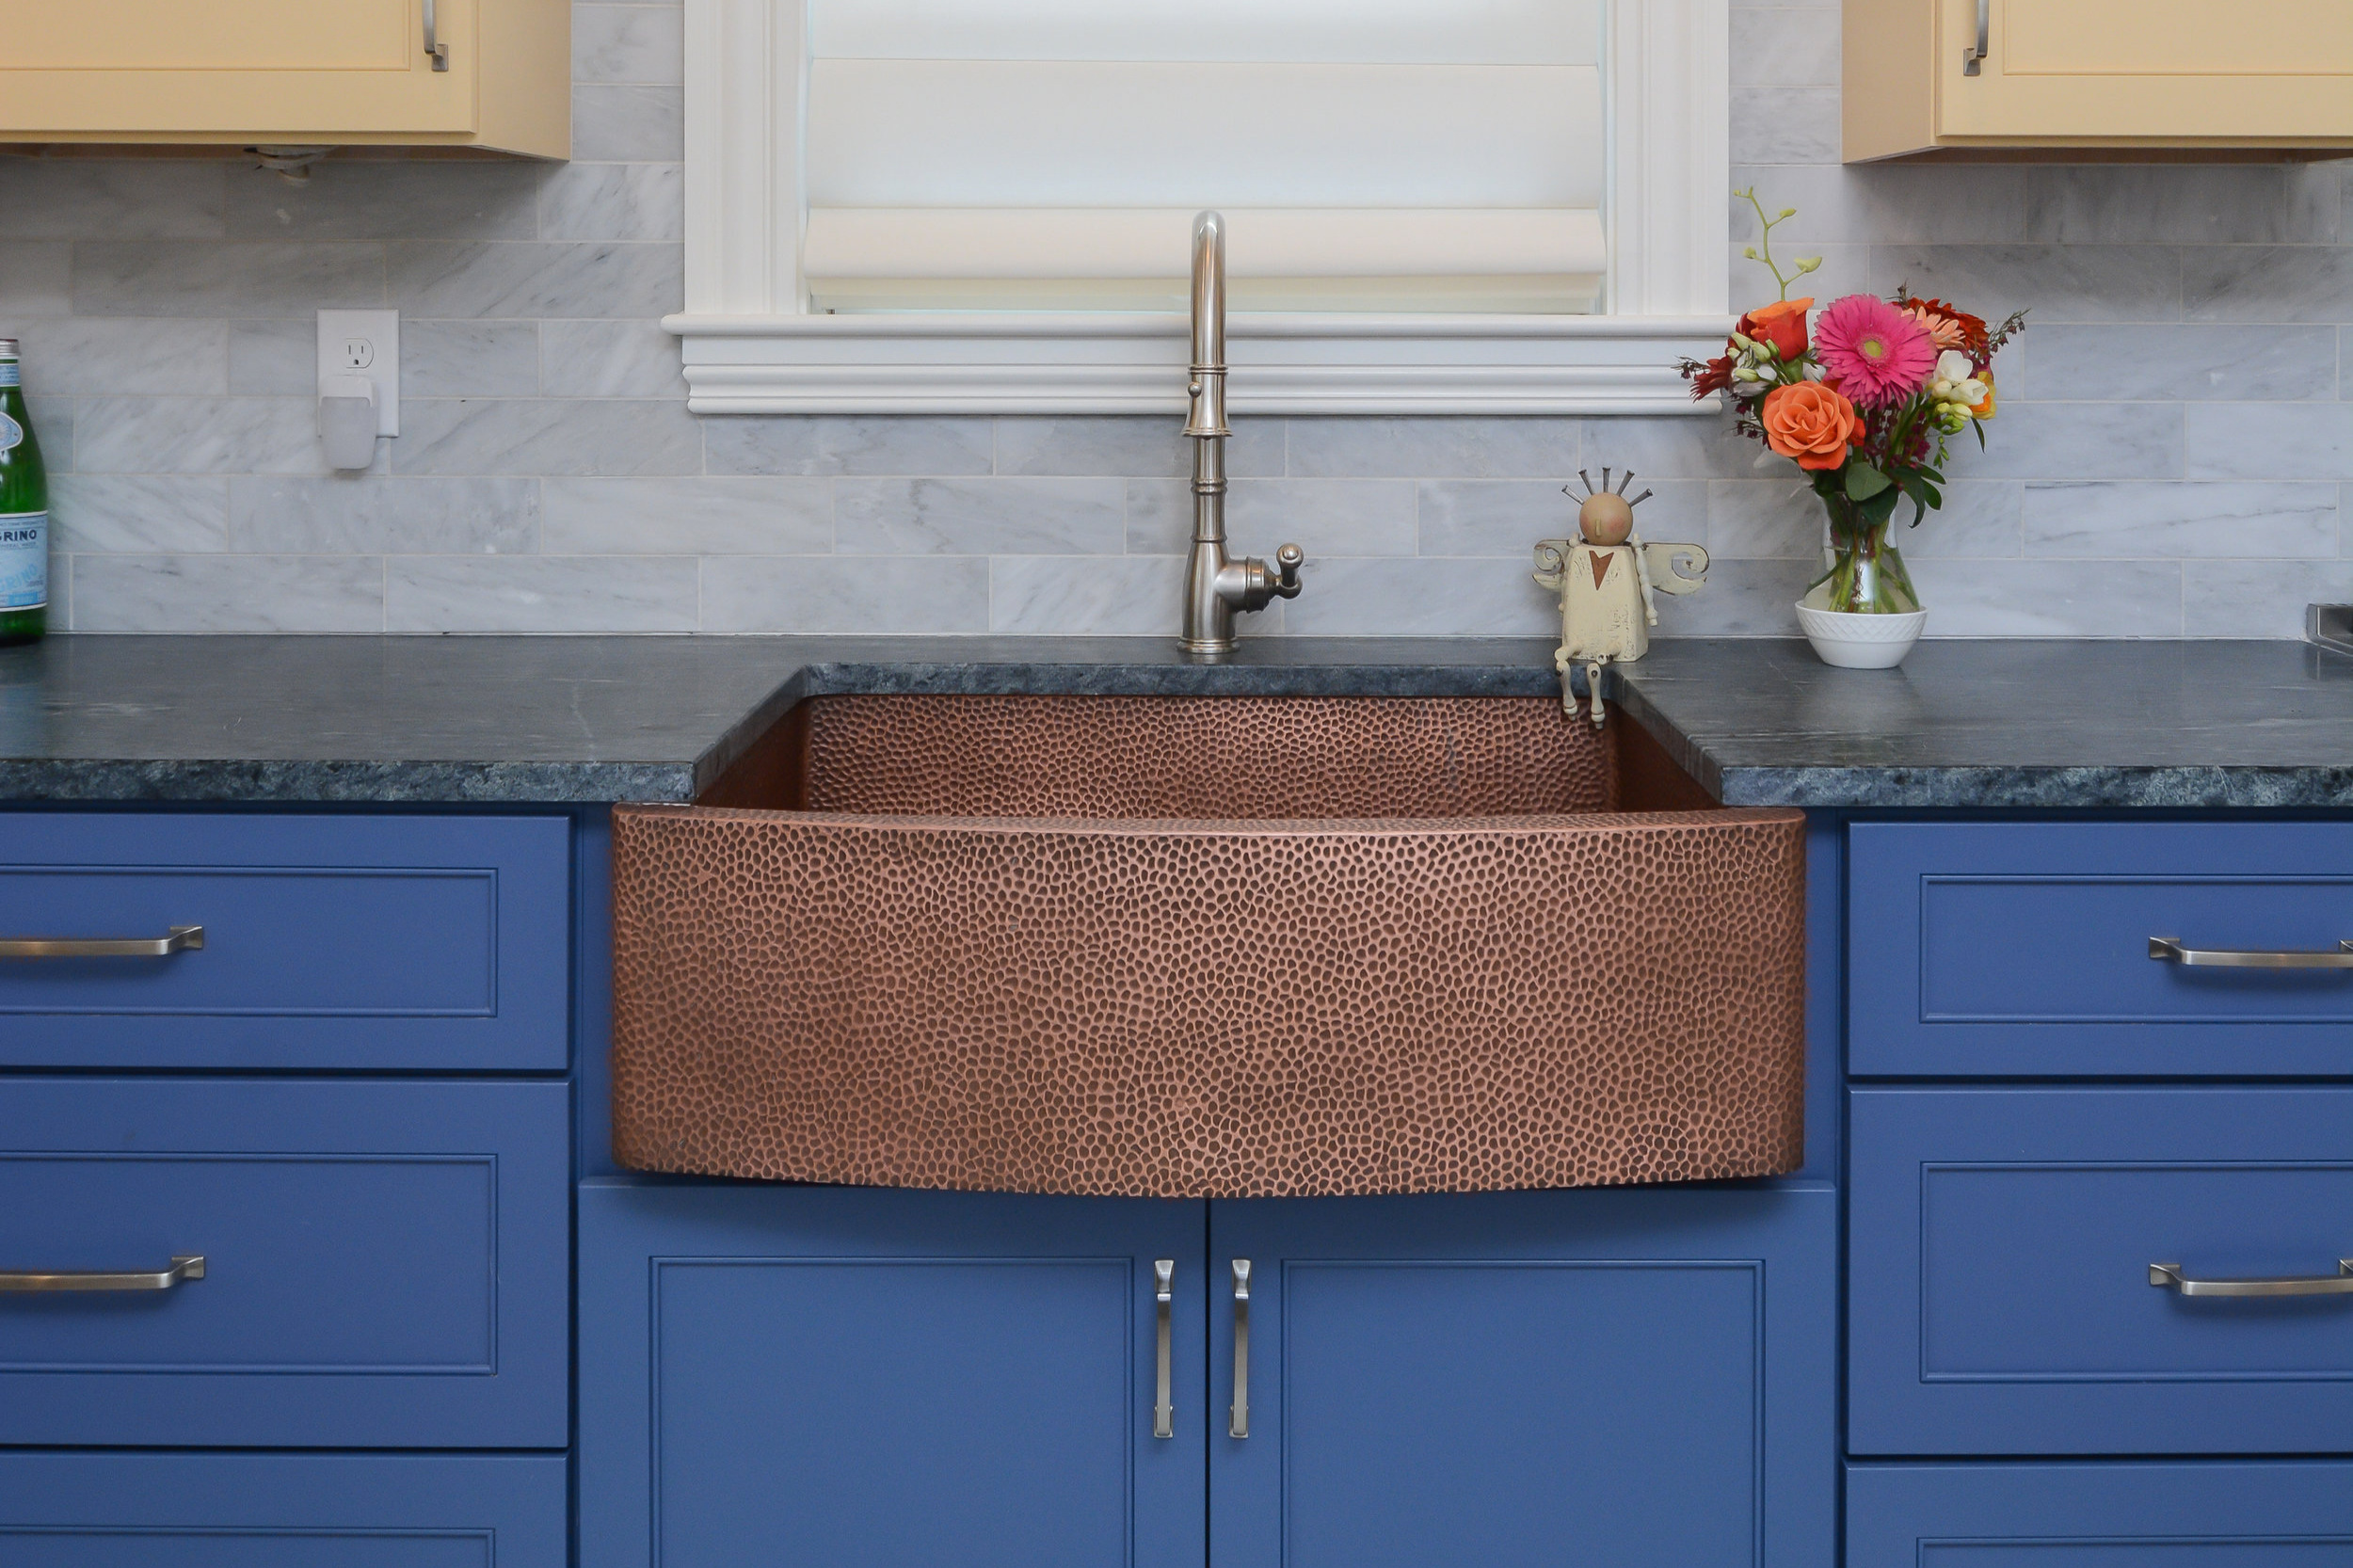 Hammered copper sink is the centerpiece